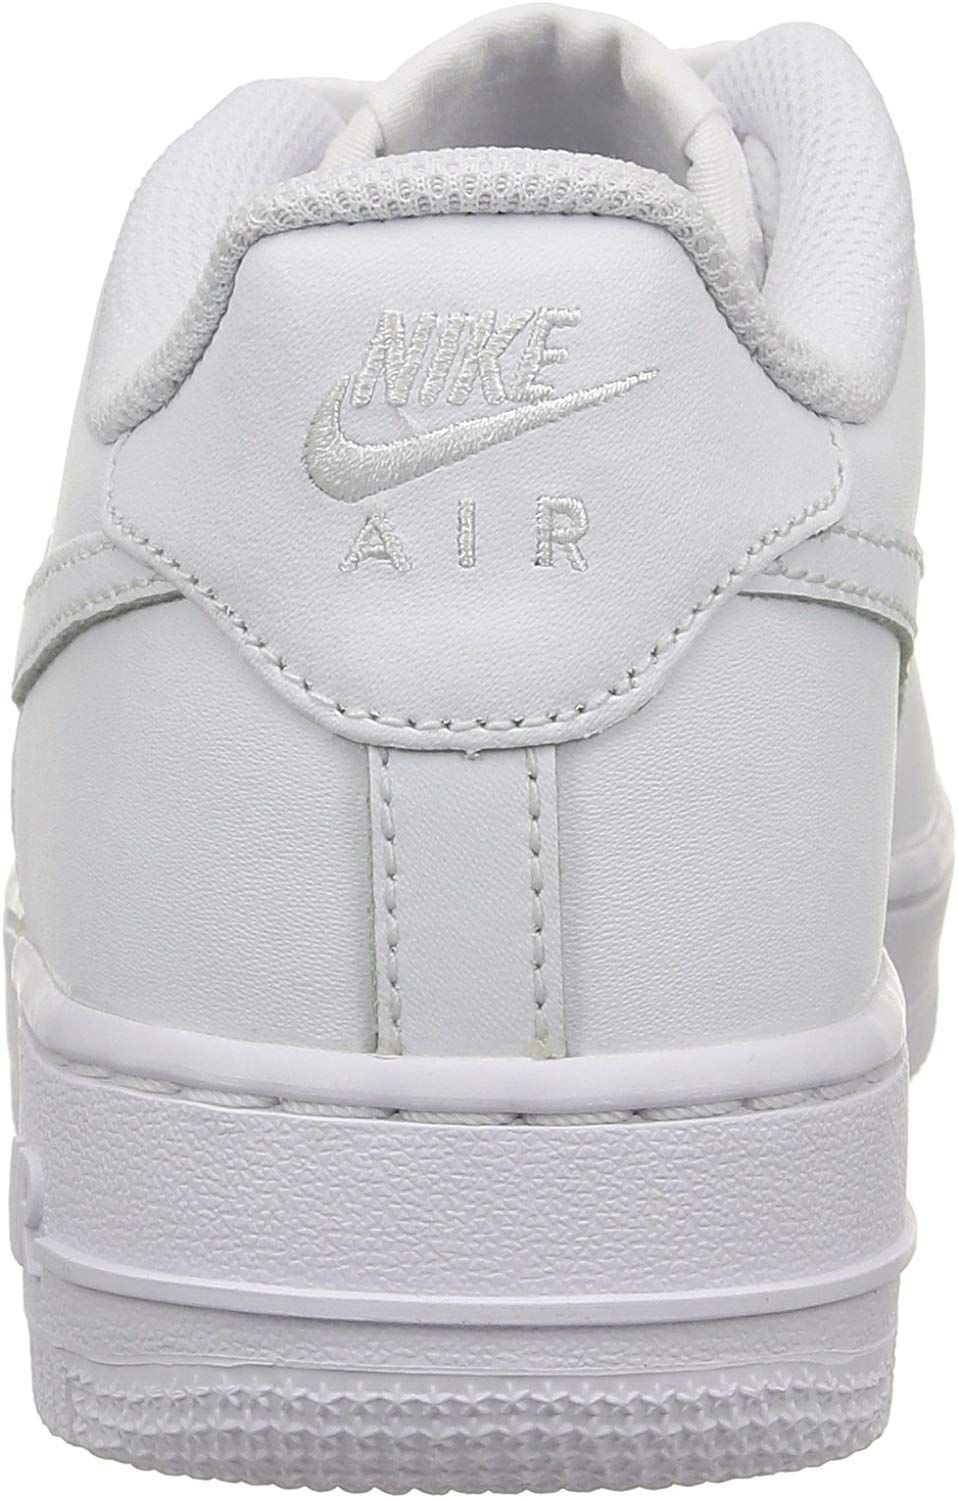 100% authentic popular brand wholesale price Nike Air Force 1 Unisex-Kinder Sneakers, Weiß (117 WHITE ...